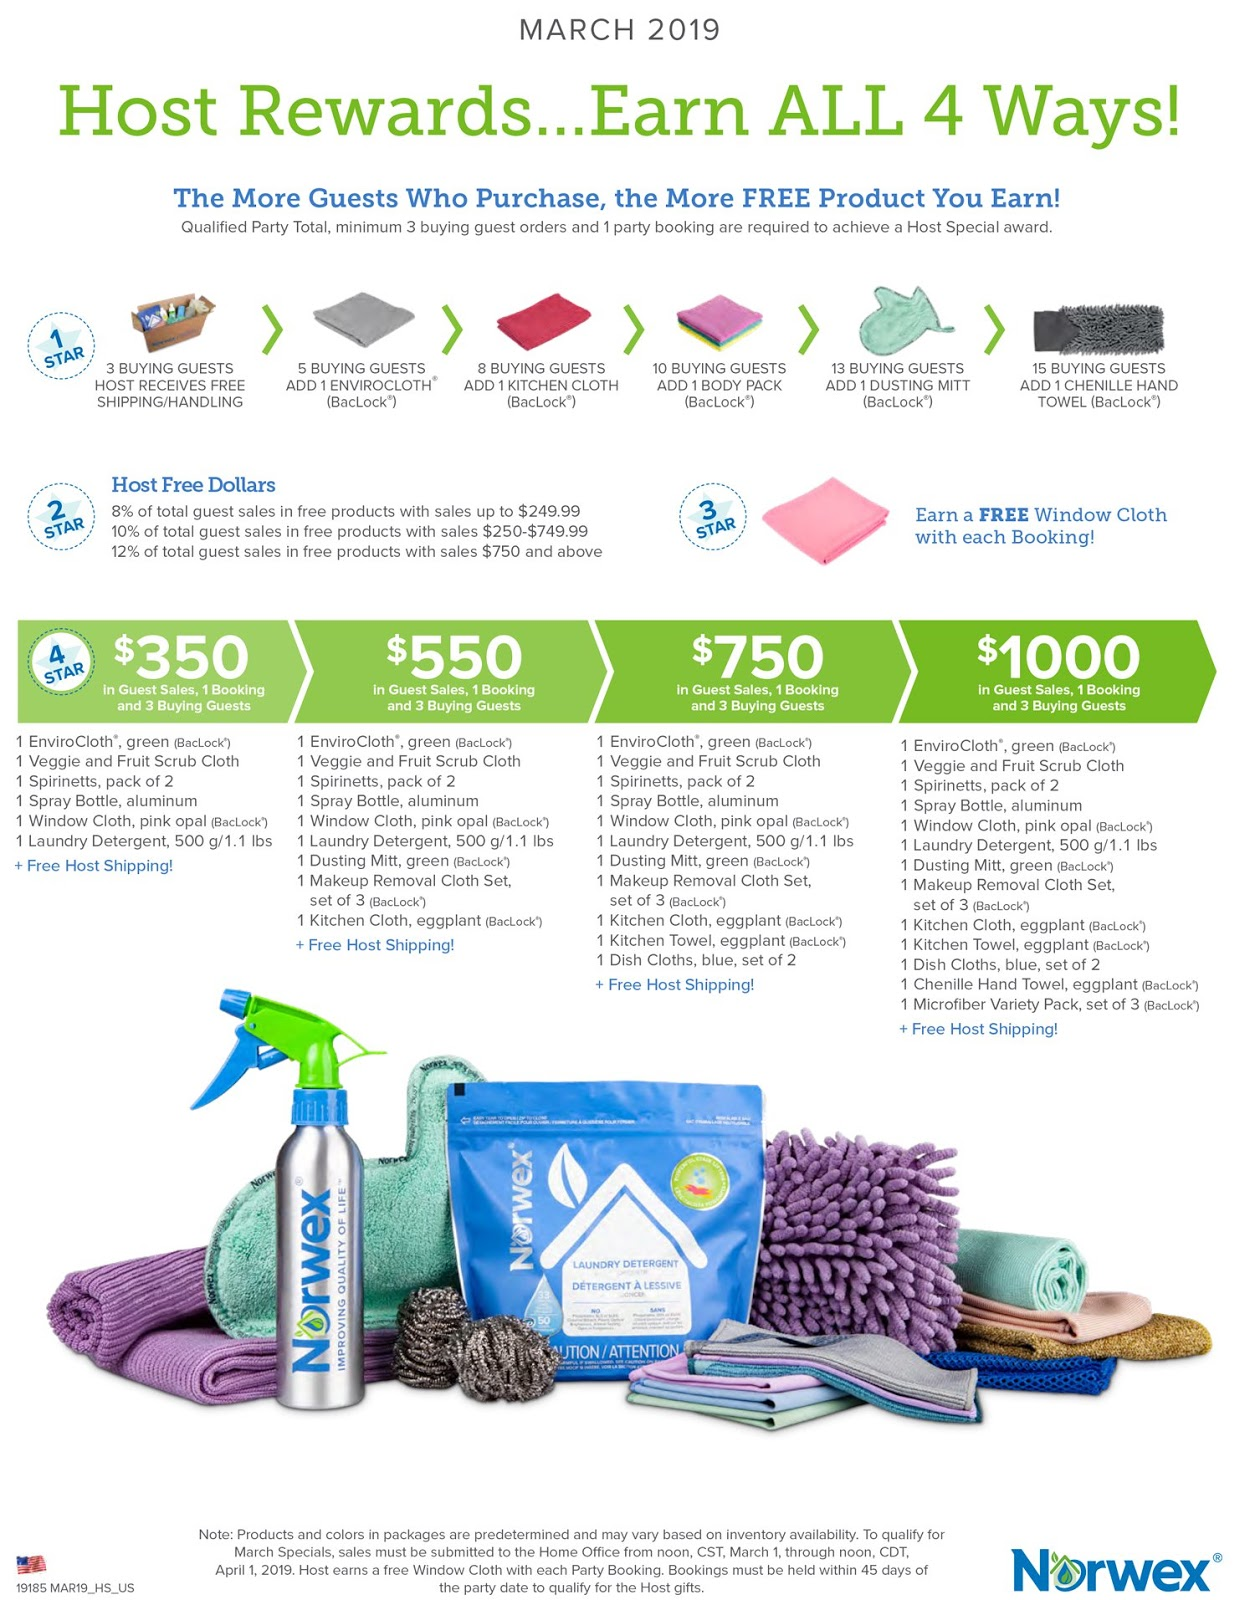 Rebecca Lange Norwex Independent Sales Consultant March 2019